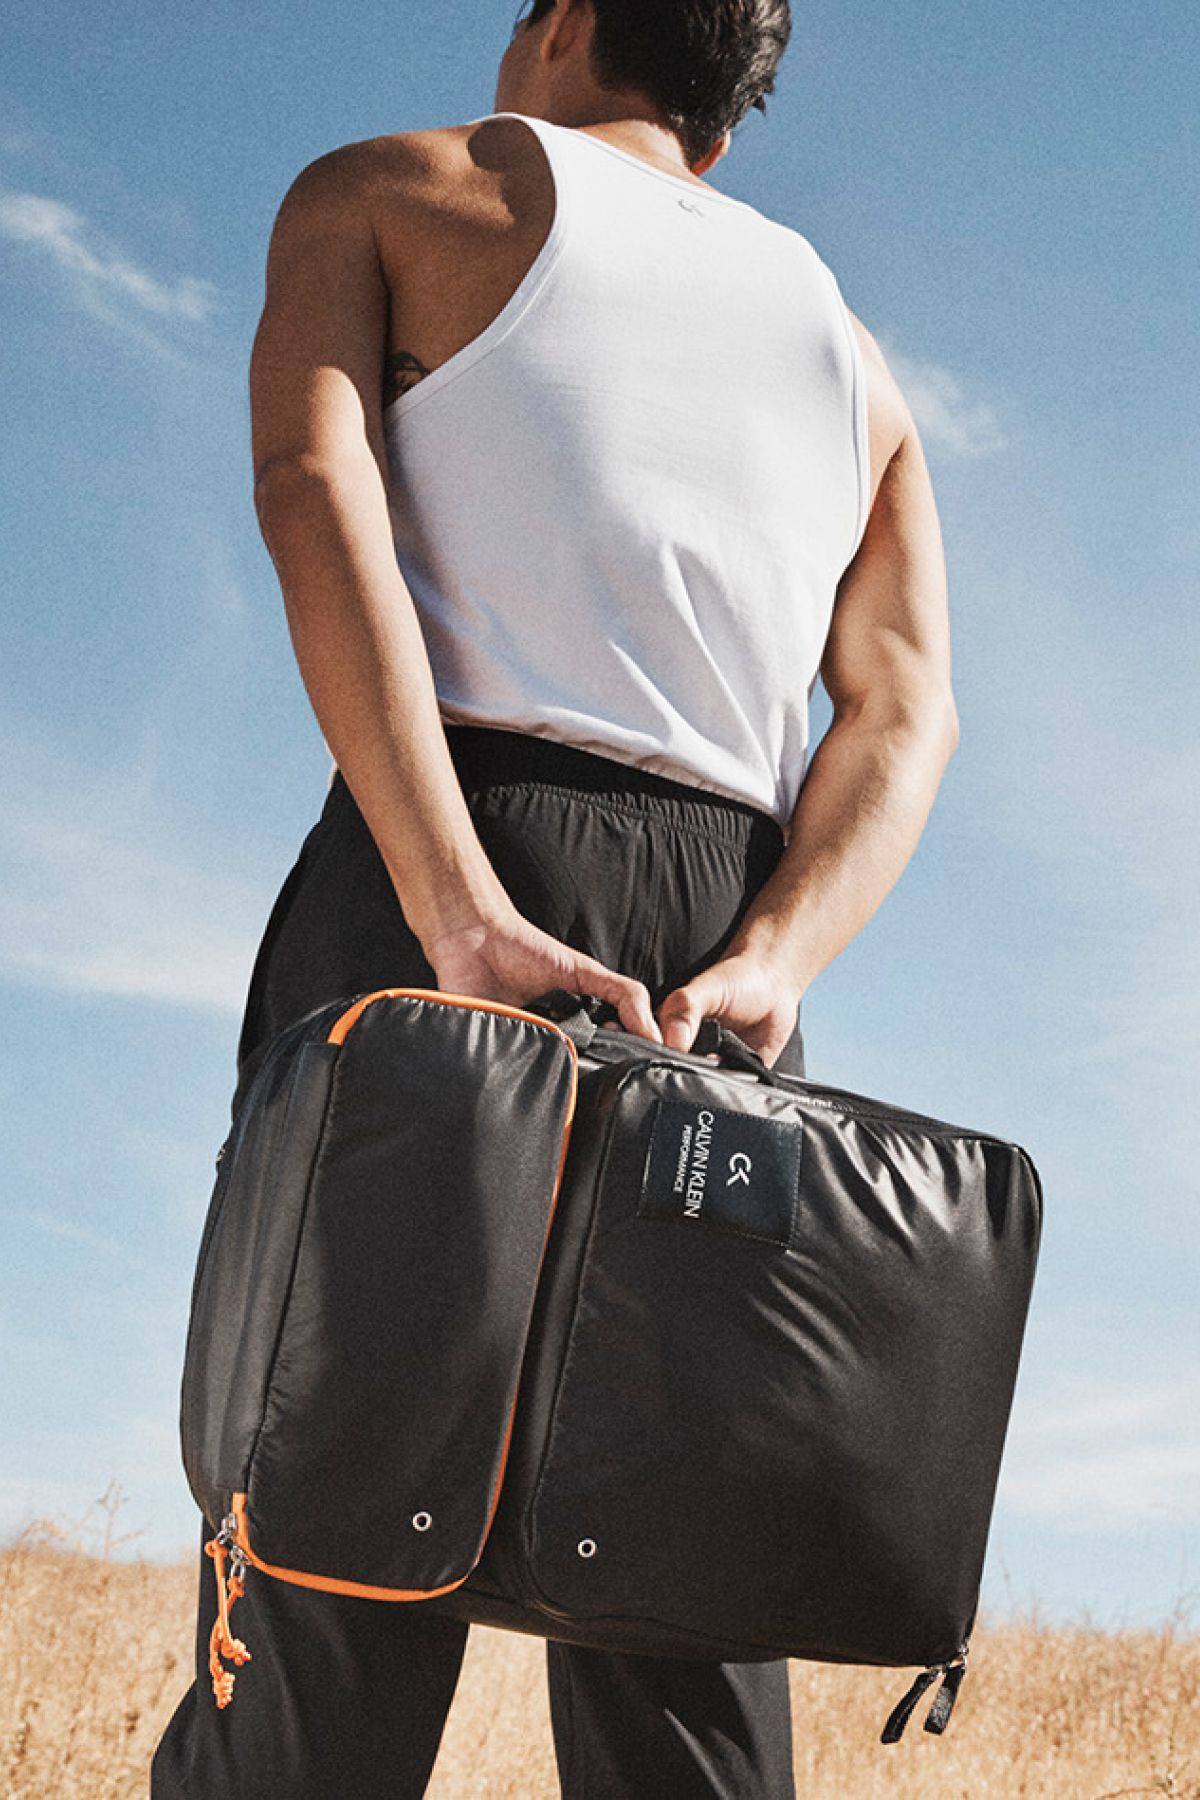 715c8973c4 Our Spring 2019 CALVIN KLEIN PERFORMANCE bomber nylon modular backpack with  adjustable straps is perfect for all of your workout needs.